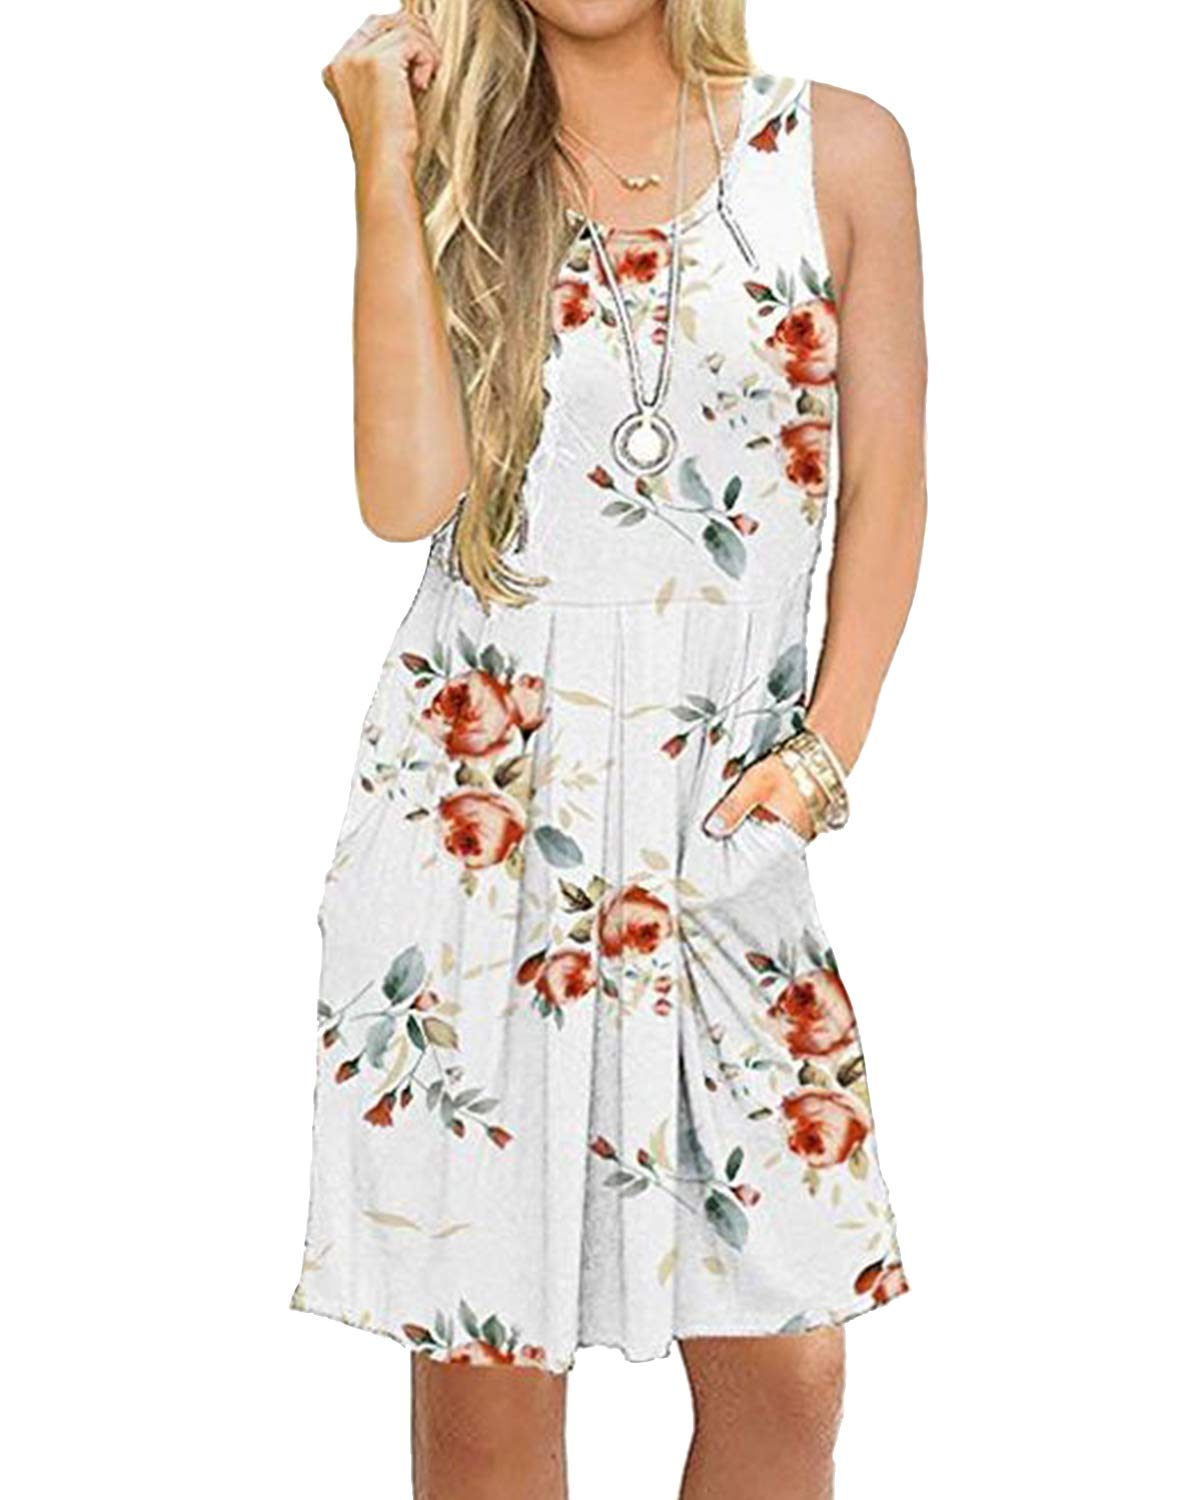 deesdail Floral Dresses for Women Midi, Ladies Crewneck Sleeveless Summer Tunic Knee Length Long Tanks Casual Dress with Pockets Flower White M